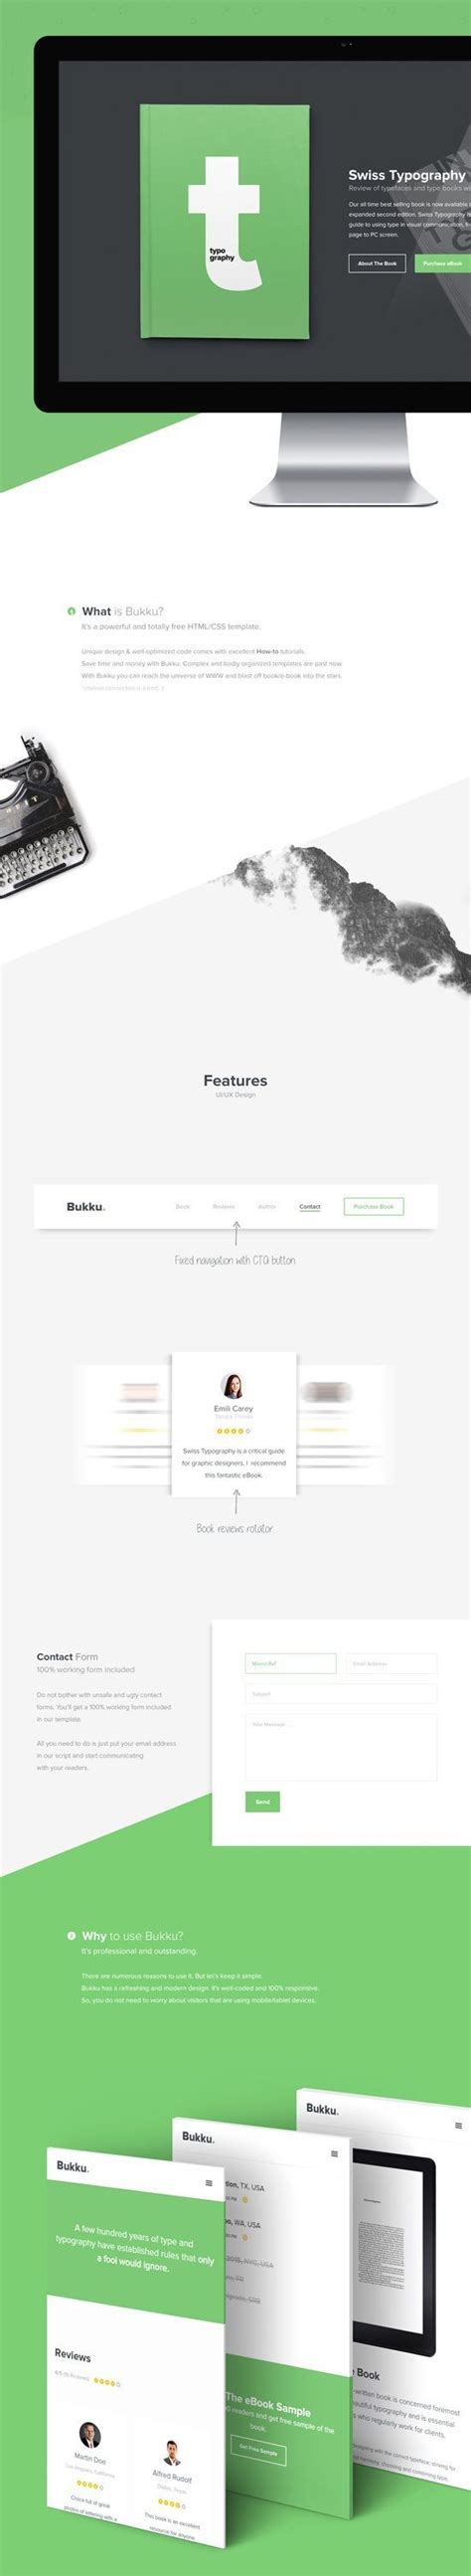 free html website templates for advertising agency 24 best free creative agency website templates images on